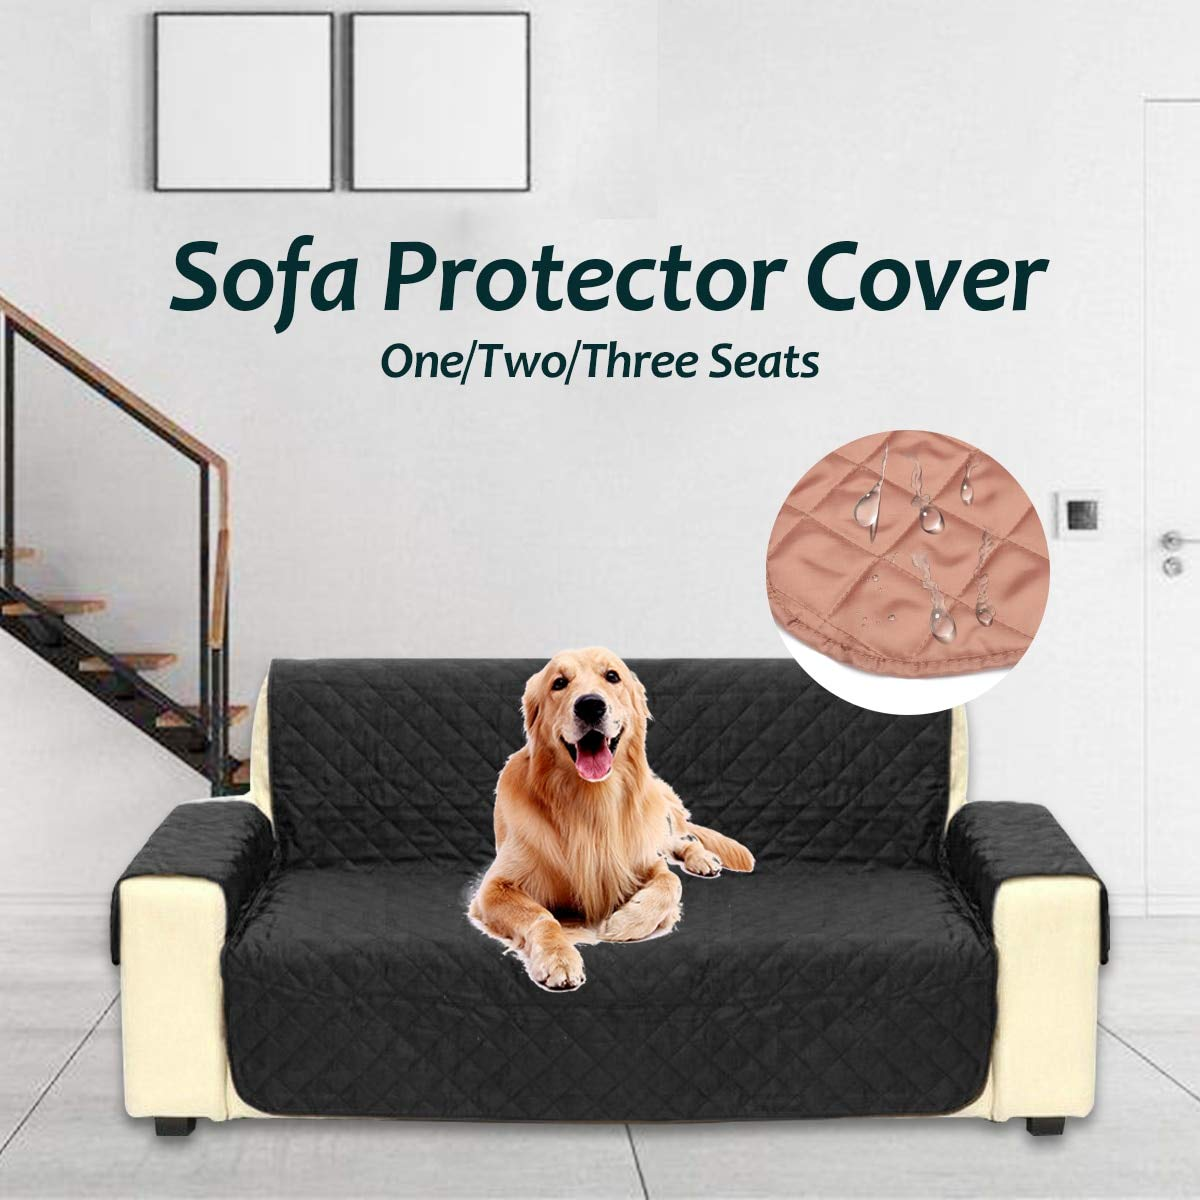 Waterproof Sofa Cover for Dogs Dogs Dogs Pets Kids Living Room Armchair Sofa Towel Lounge Predector Couch Cover 1 2 3 Seater Slipcover   White, 1 Seater 25e0fa